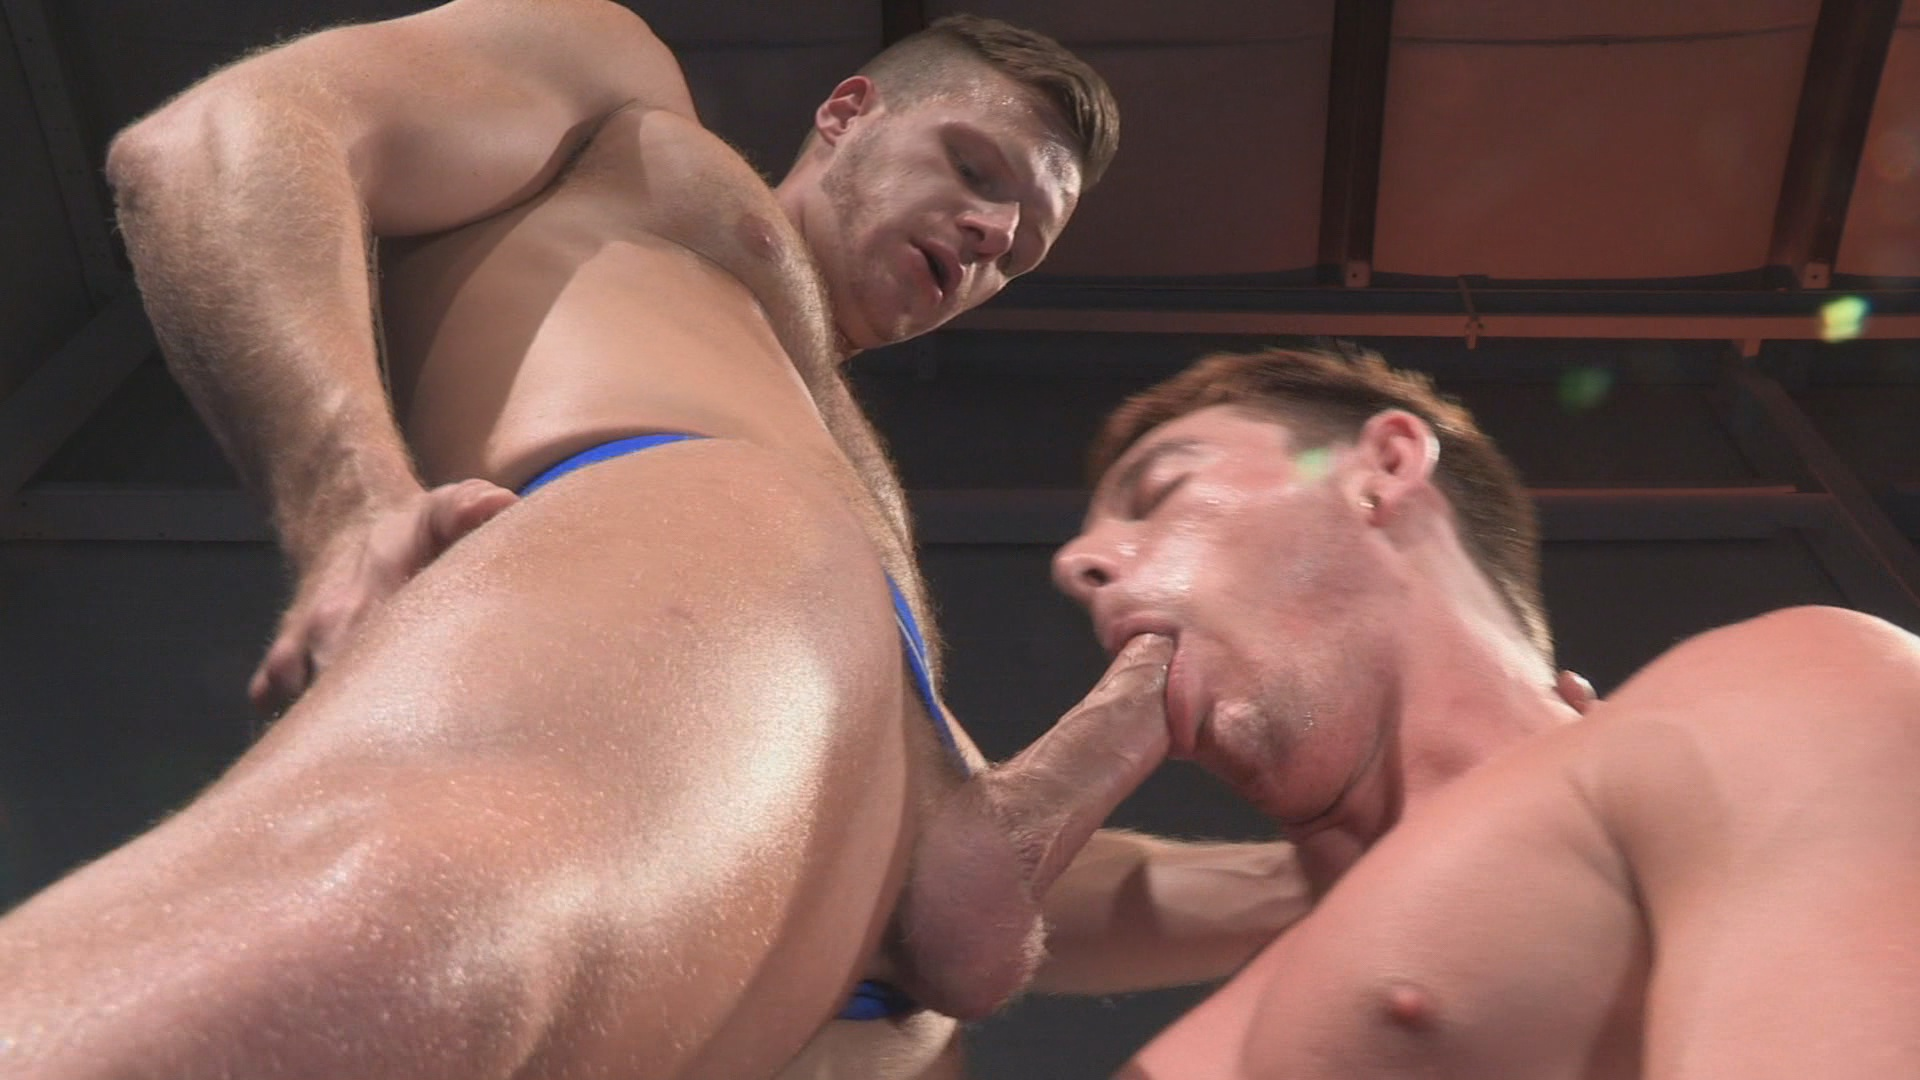 Jacked: Brent Corrigan And Brian Bonds Xvideo gay